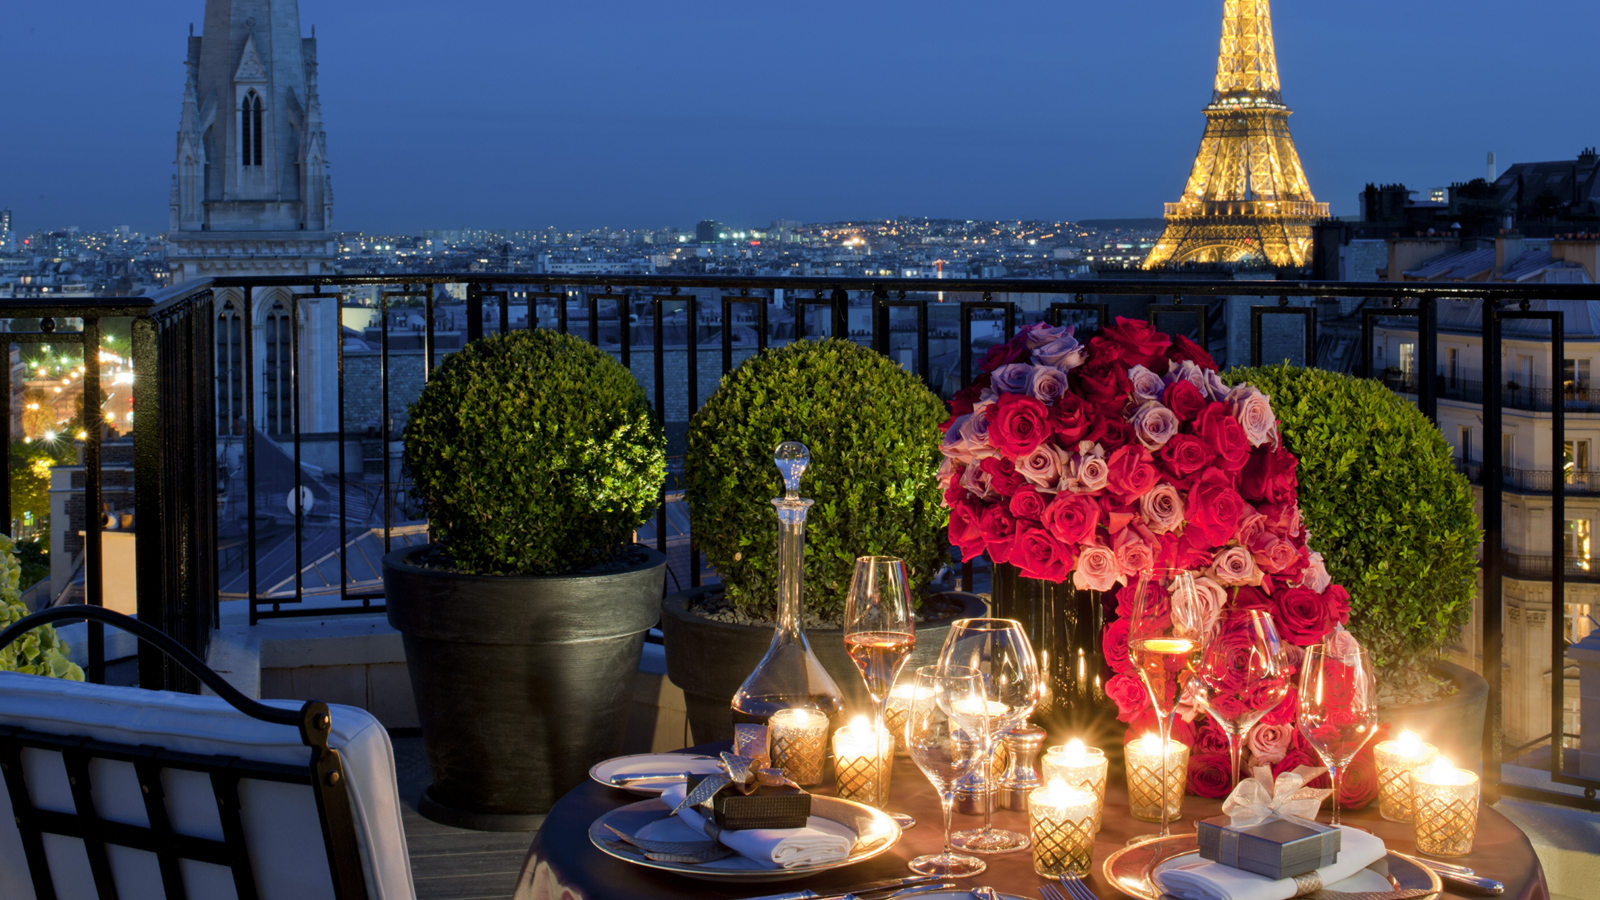 8 romantic things to do in paris for a valentine 39 s day getaway. Black Bedroom Furniture Sets. Home Design Ideas